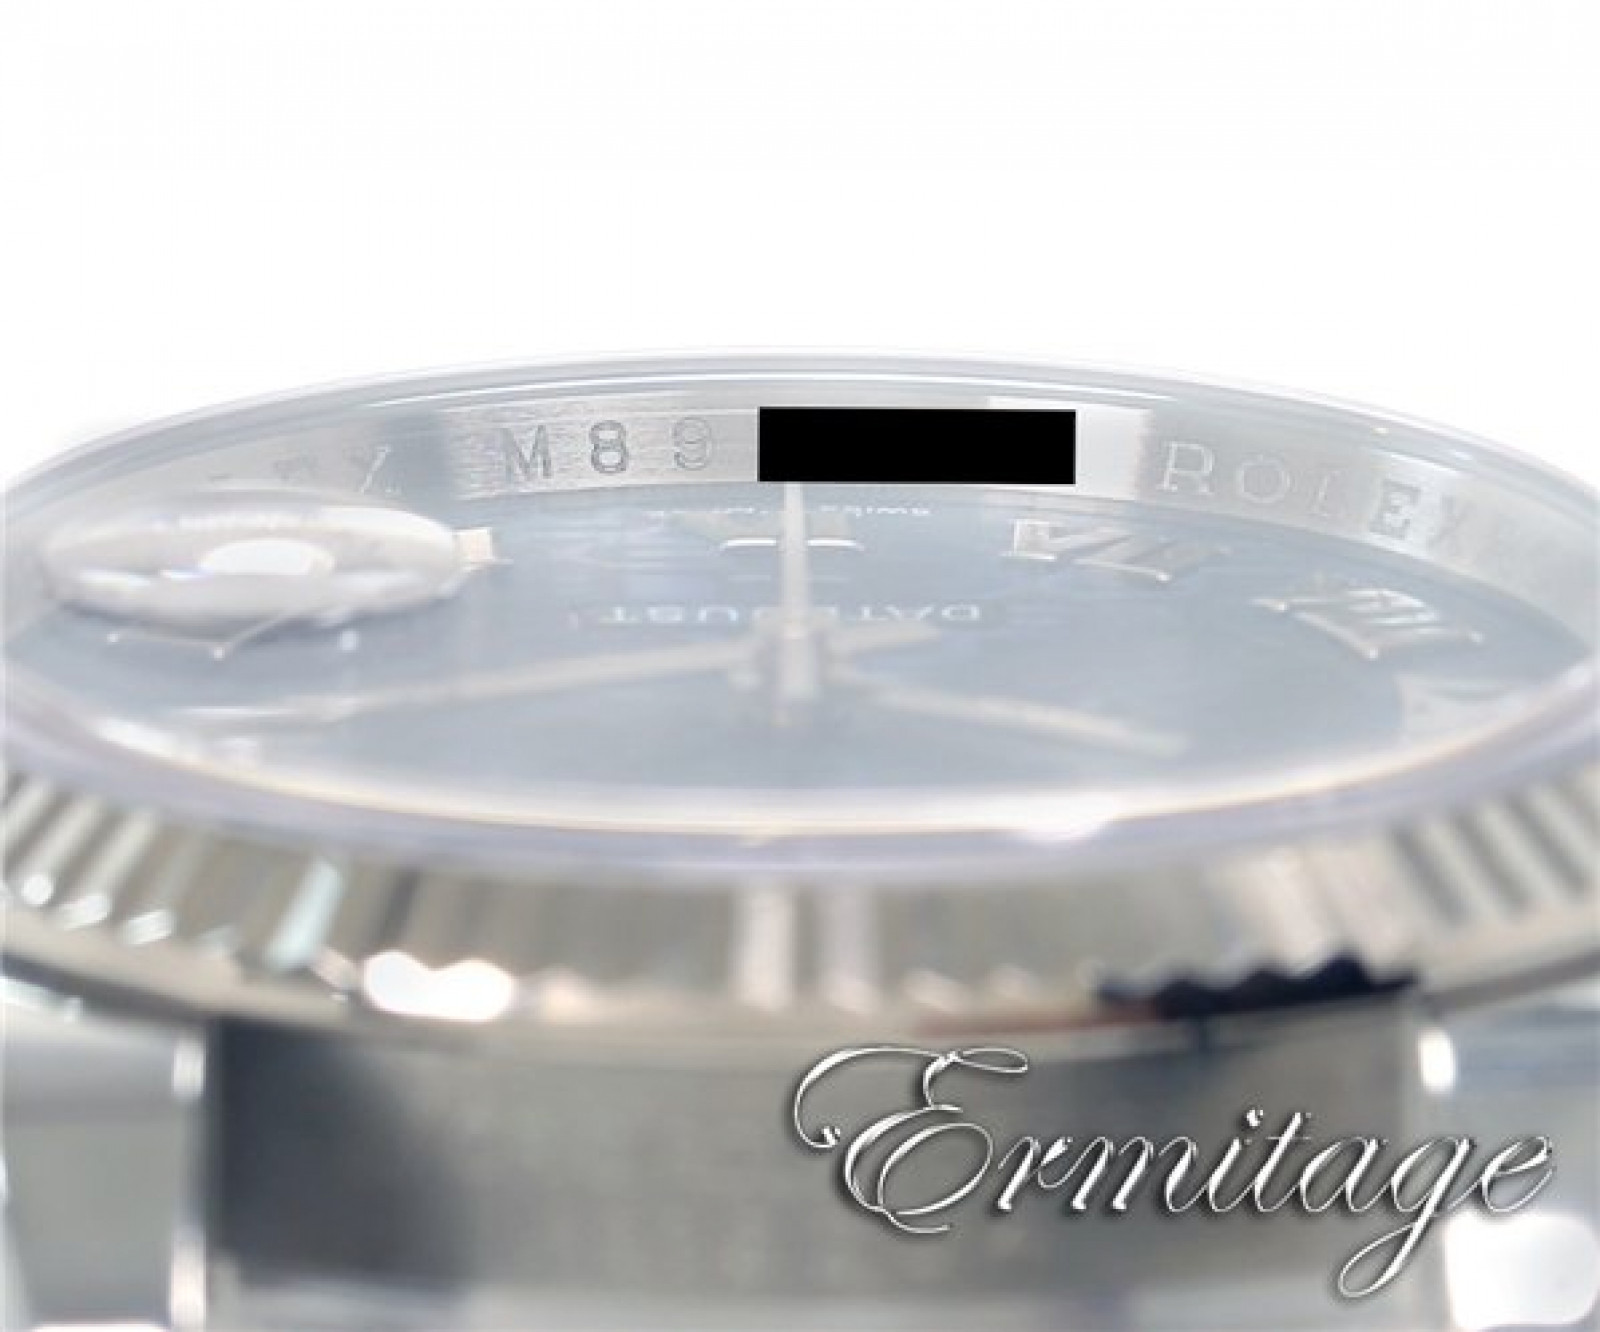 Sell Your Rolex Datejust 116234